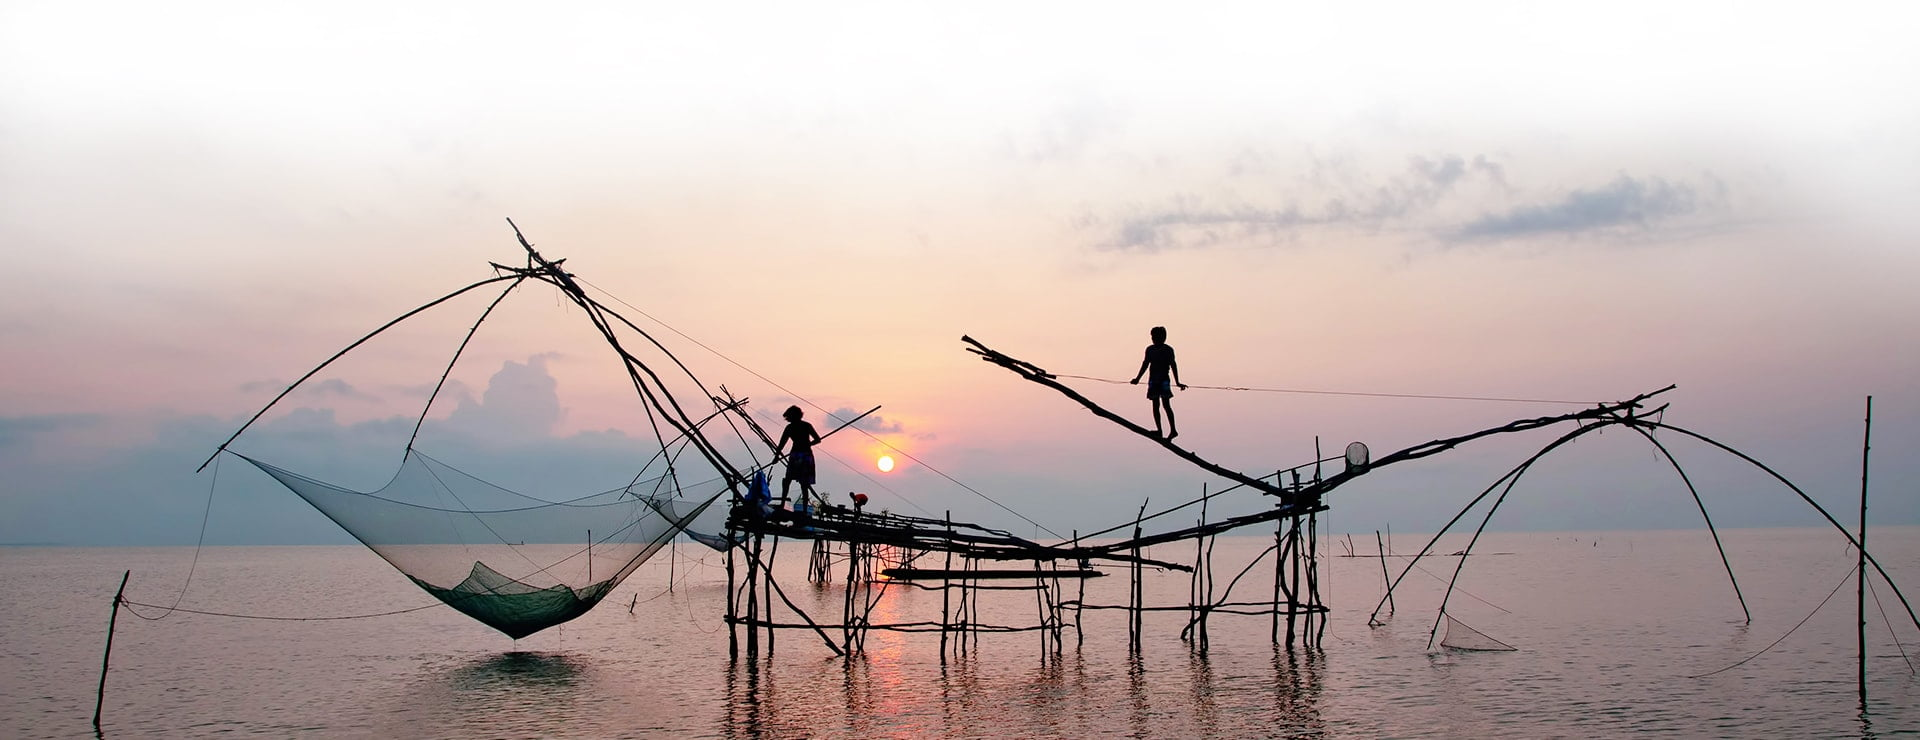 Fishermen at sunset in Danang